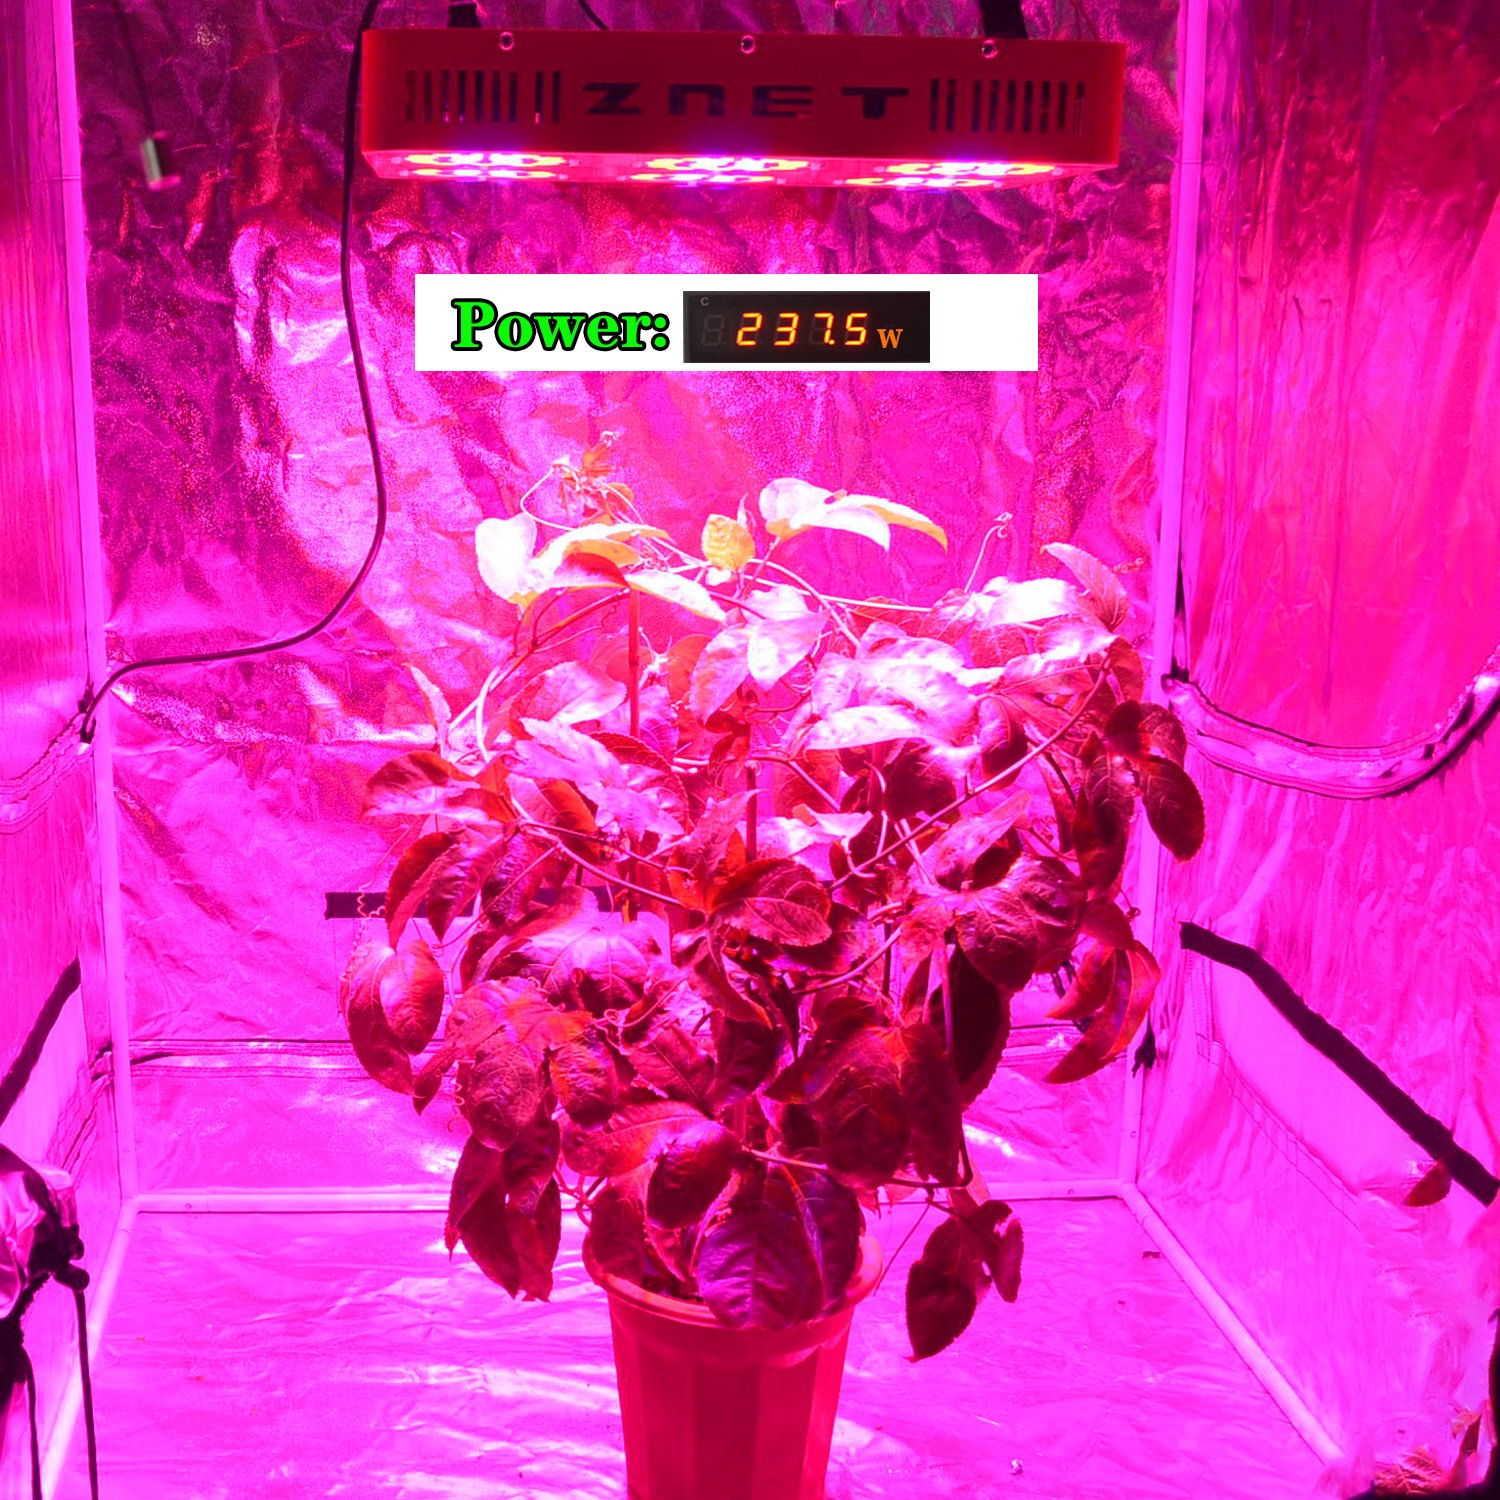 Amazon 400w hps replacement znet6 daisy chain full spectrum amazon 400w hps replacement znet6 daisy chain full spectrum led grow light for indoor growing medical plants garden outdoor parisarafo Image collections